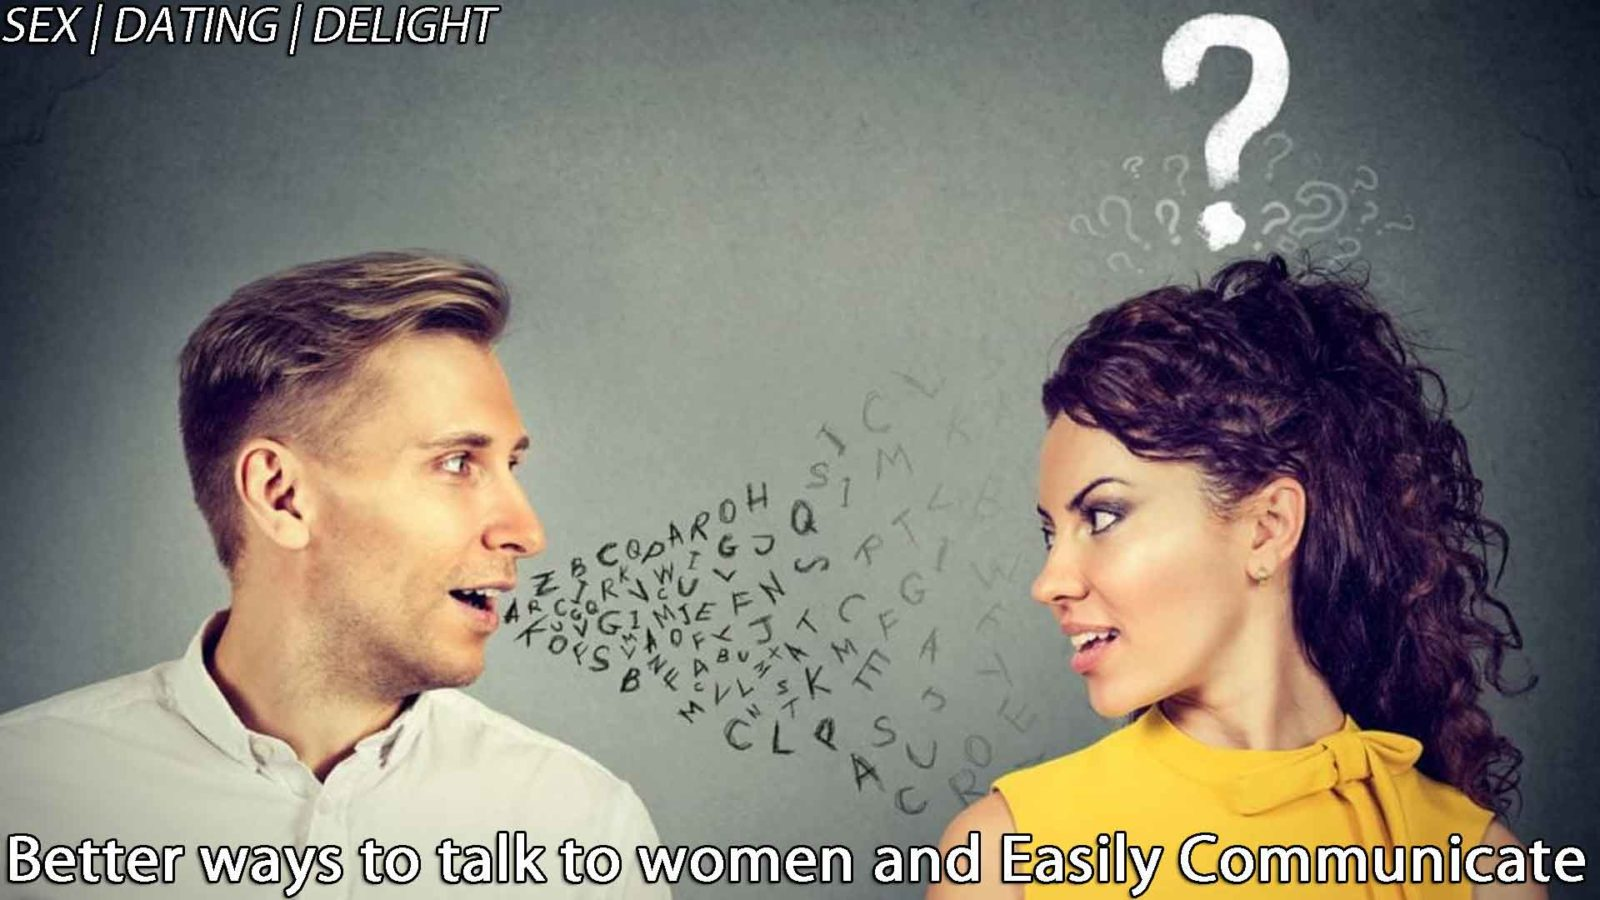 Better ways to talk to women and Easily Communicate